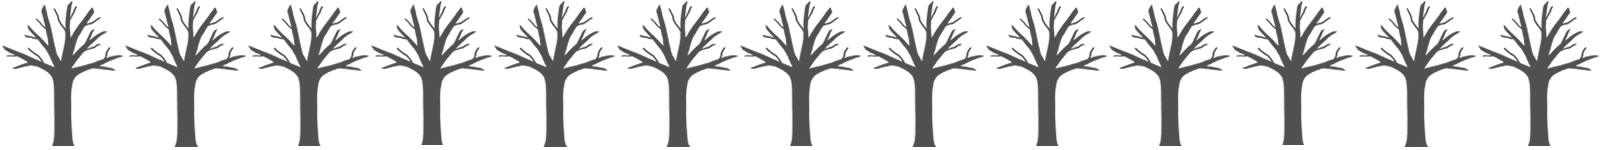 13 leafless tree graphics, denoting no trees have been planted.